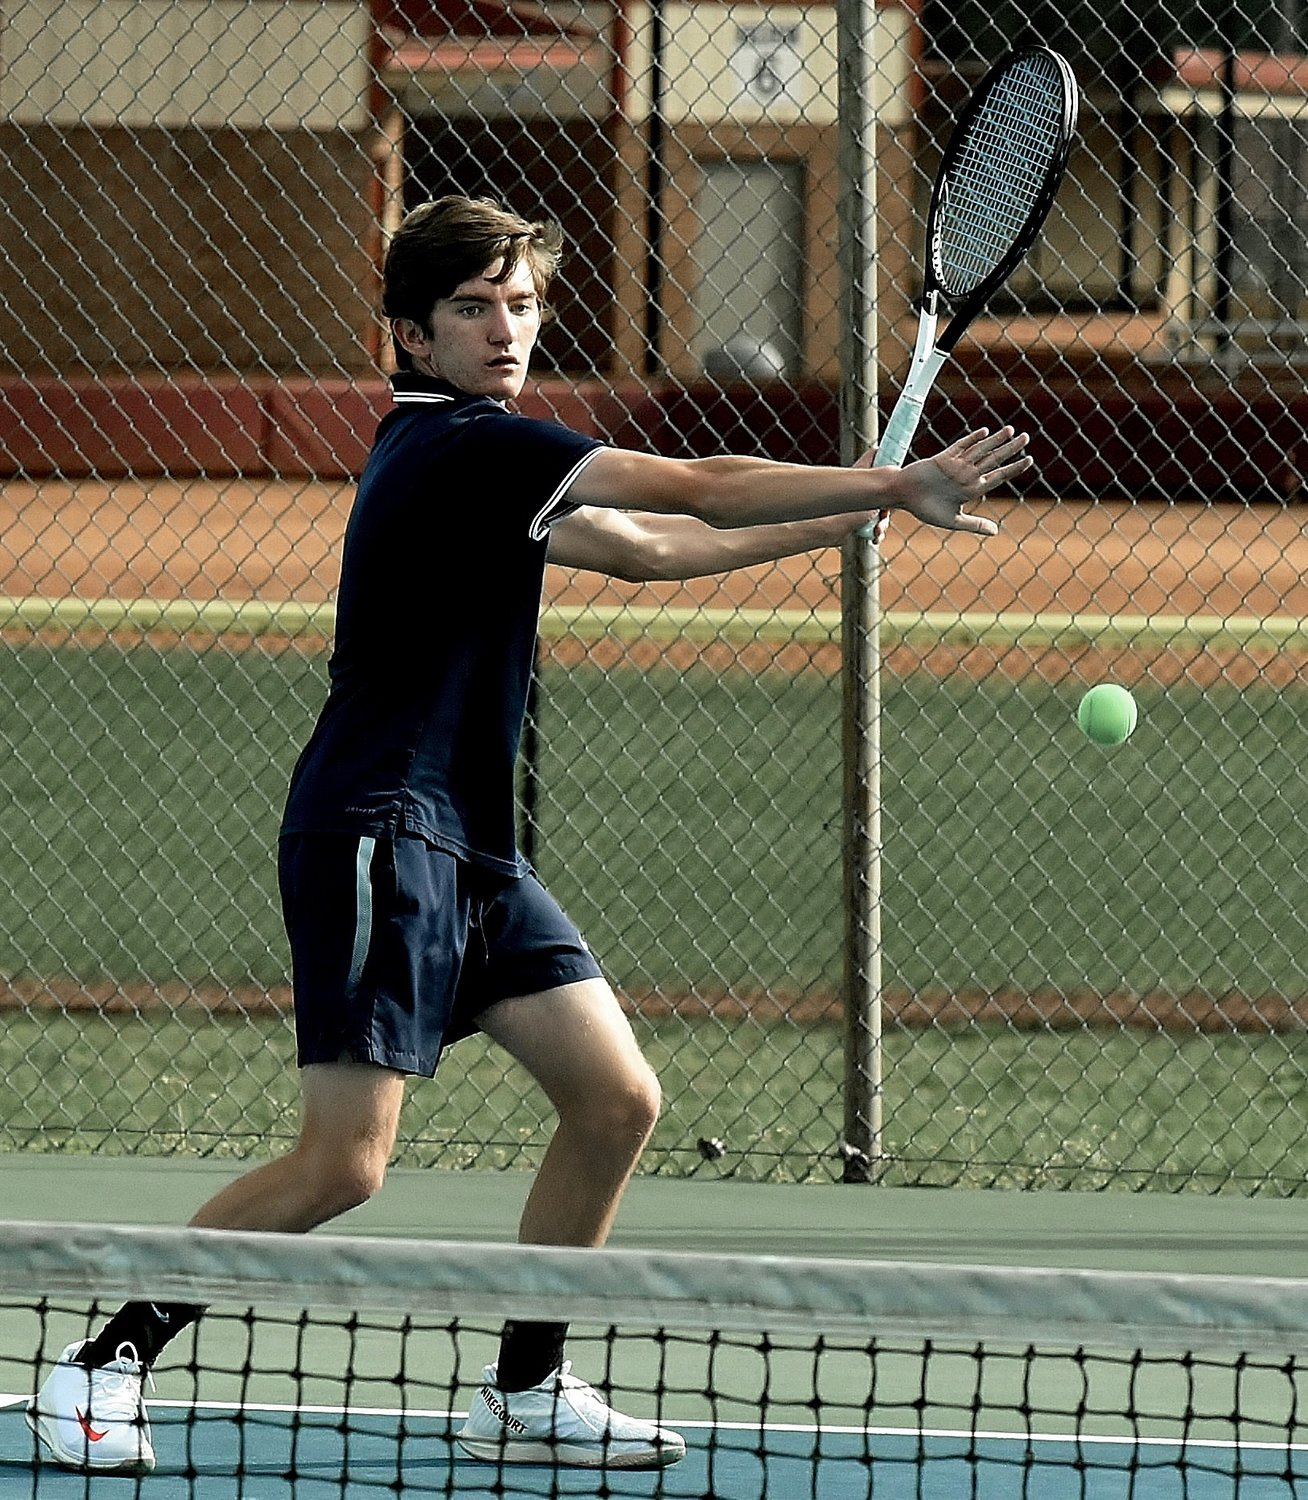 Woodland Line 2 singles player Connor Gunnell prepares to hit a forehand during Tuesday's match against Cass at Hamilton Crossing. Gunnell earned a 6-0, 6-0 win to help the Wildcats pick up a 3-2 victory over the Colonels.